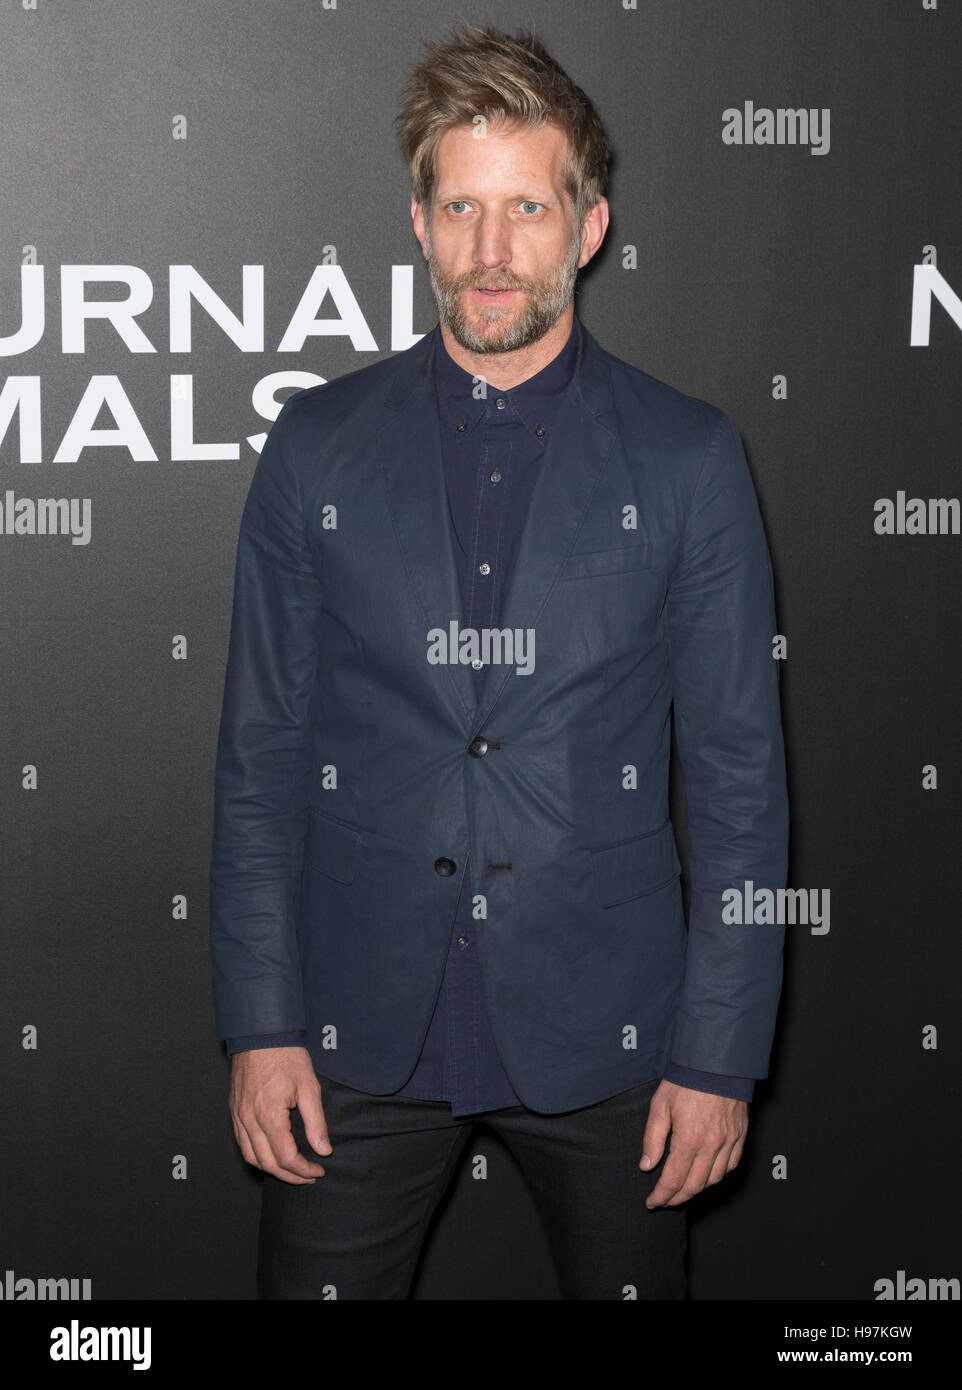 New York City, USA - November 17, 2016: Actor Paul Sparks attends the 'Nocturnal Animals' New York premiere - Stock Image